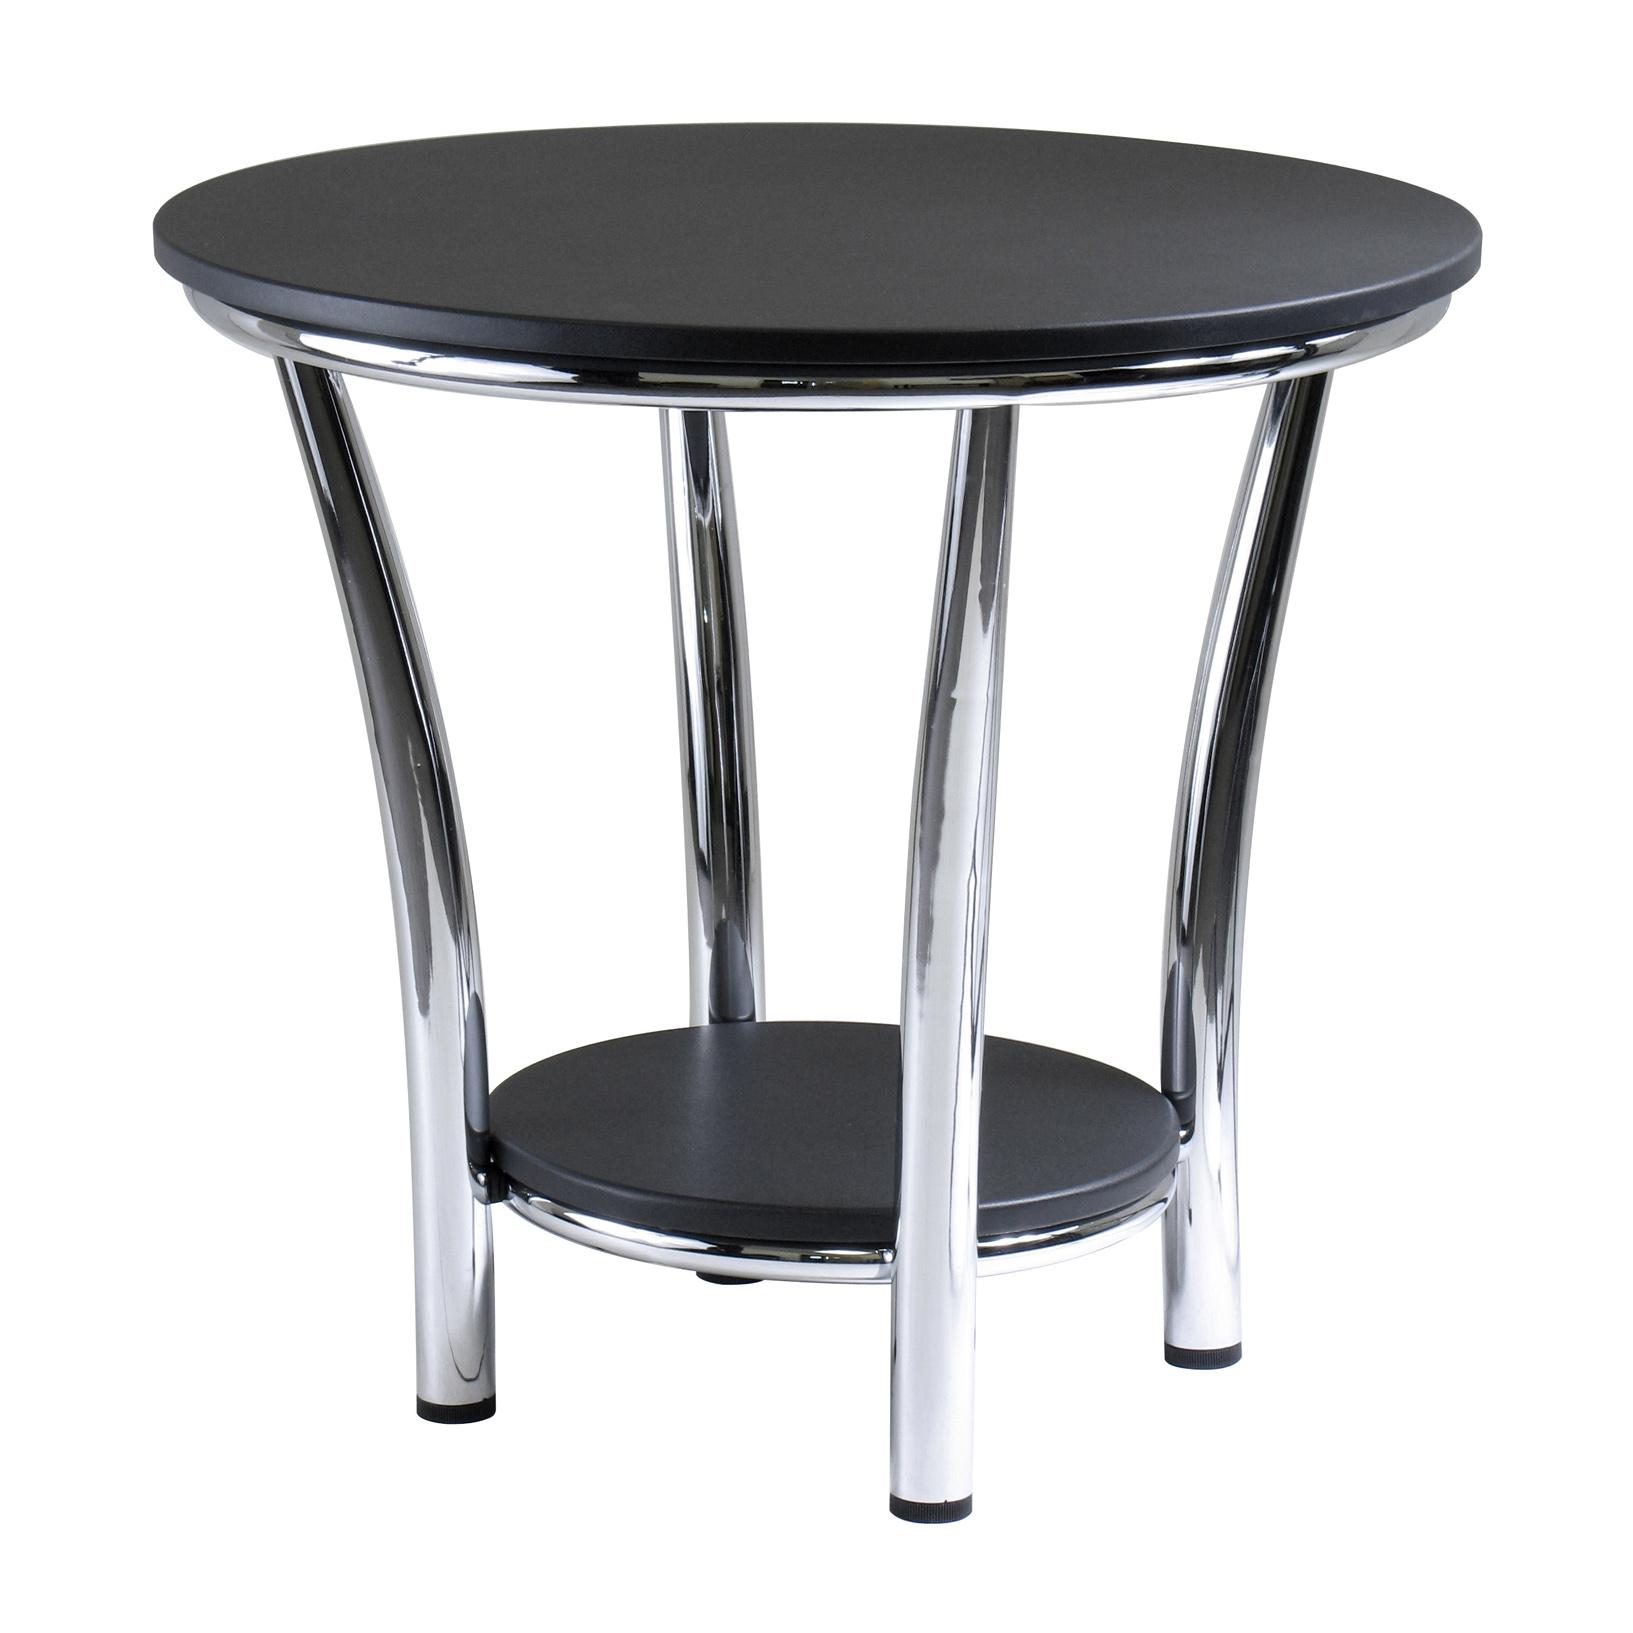 winsome wood round end table black top metal legs and from the manufacturer grey nest tables craftsman mission style furniture dining models with glass lamp powell beds stanley